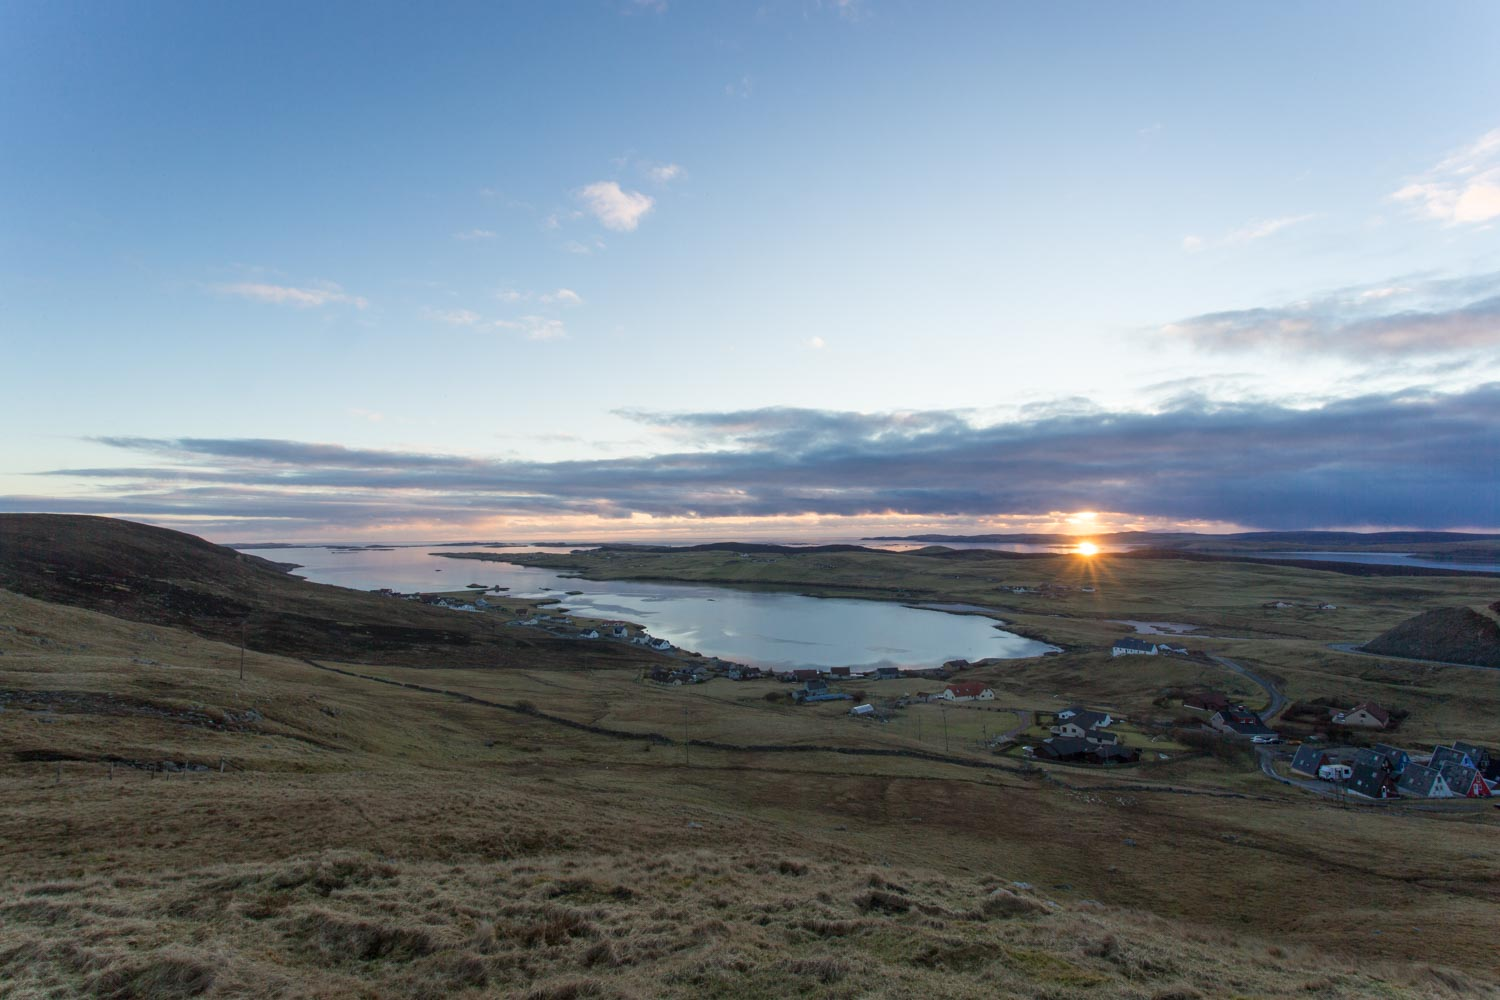 Sunset from the top of Wormadale looking out Whiteness Voe.